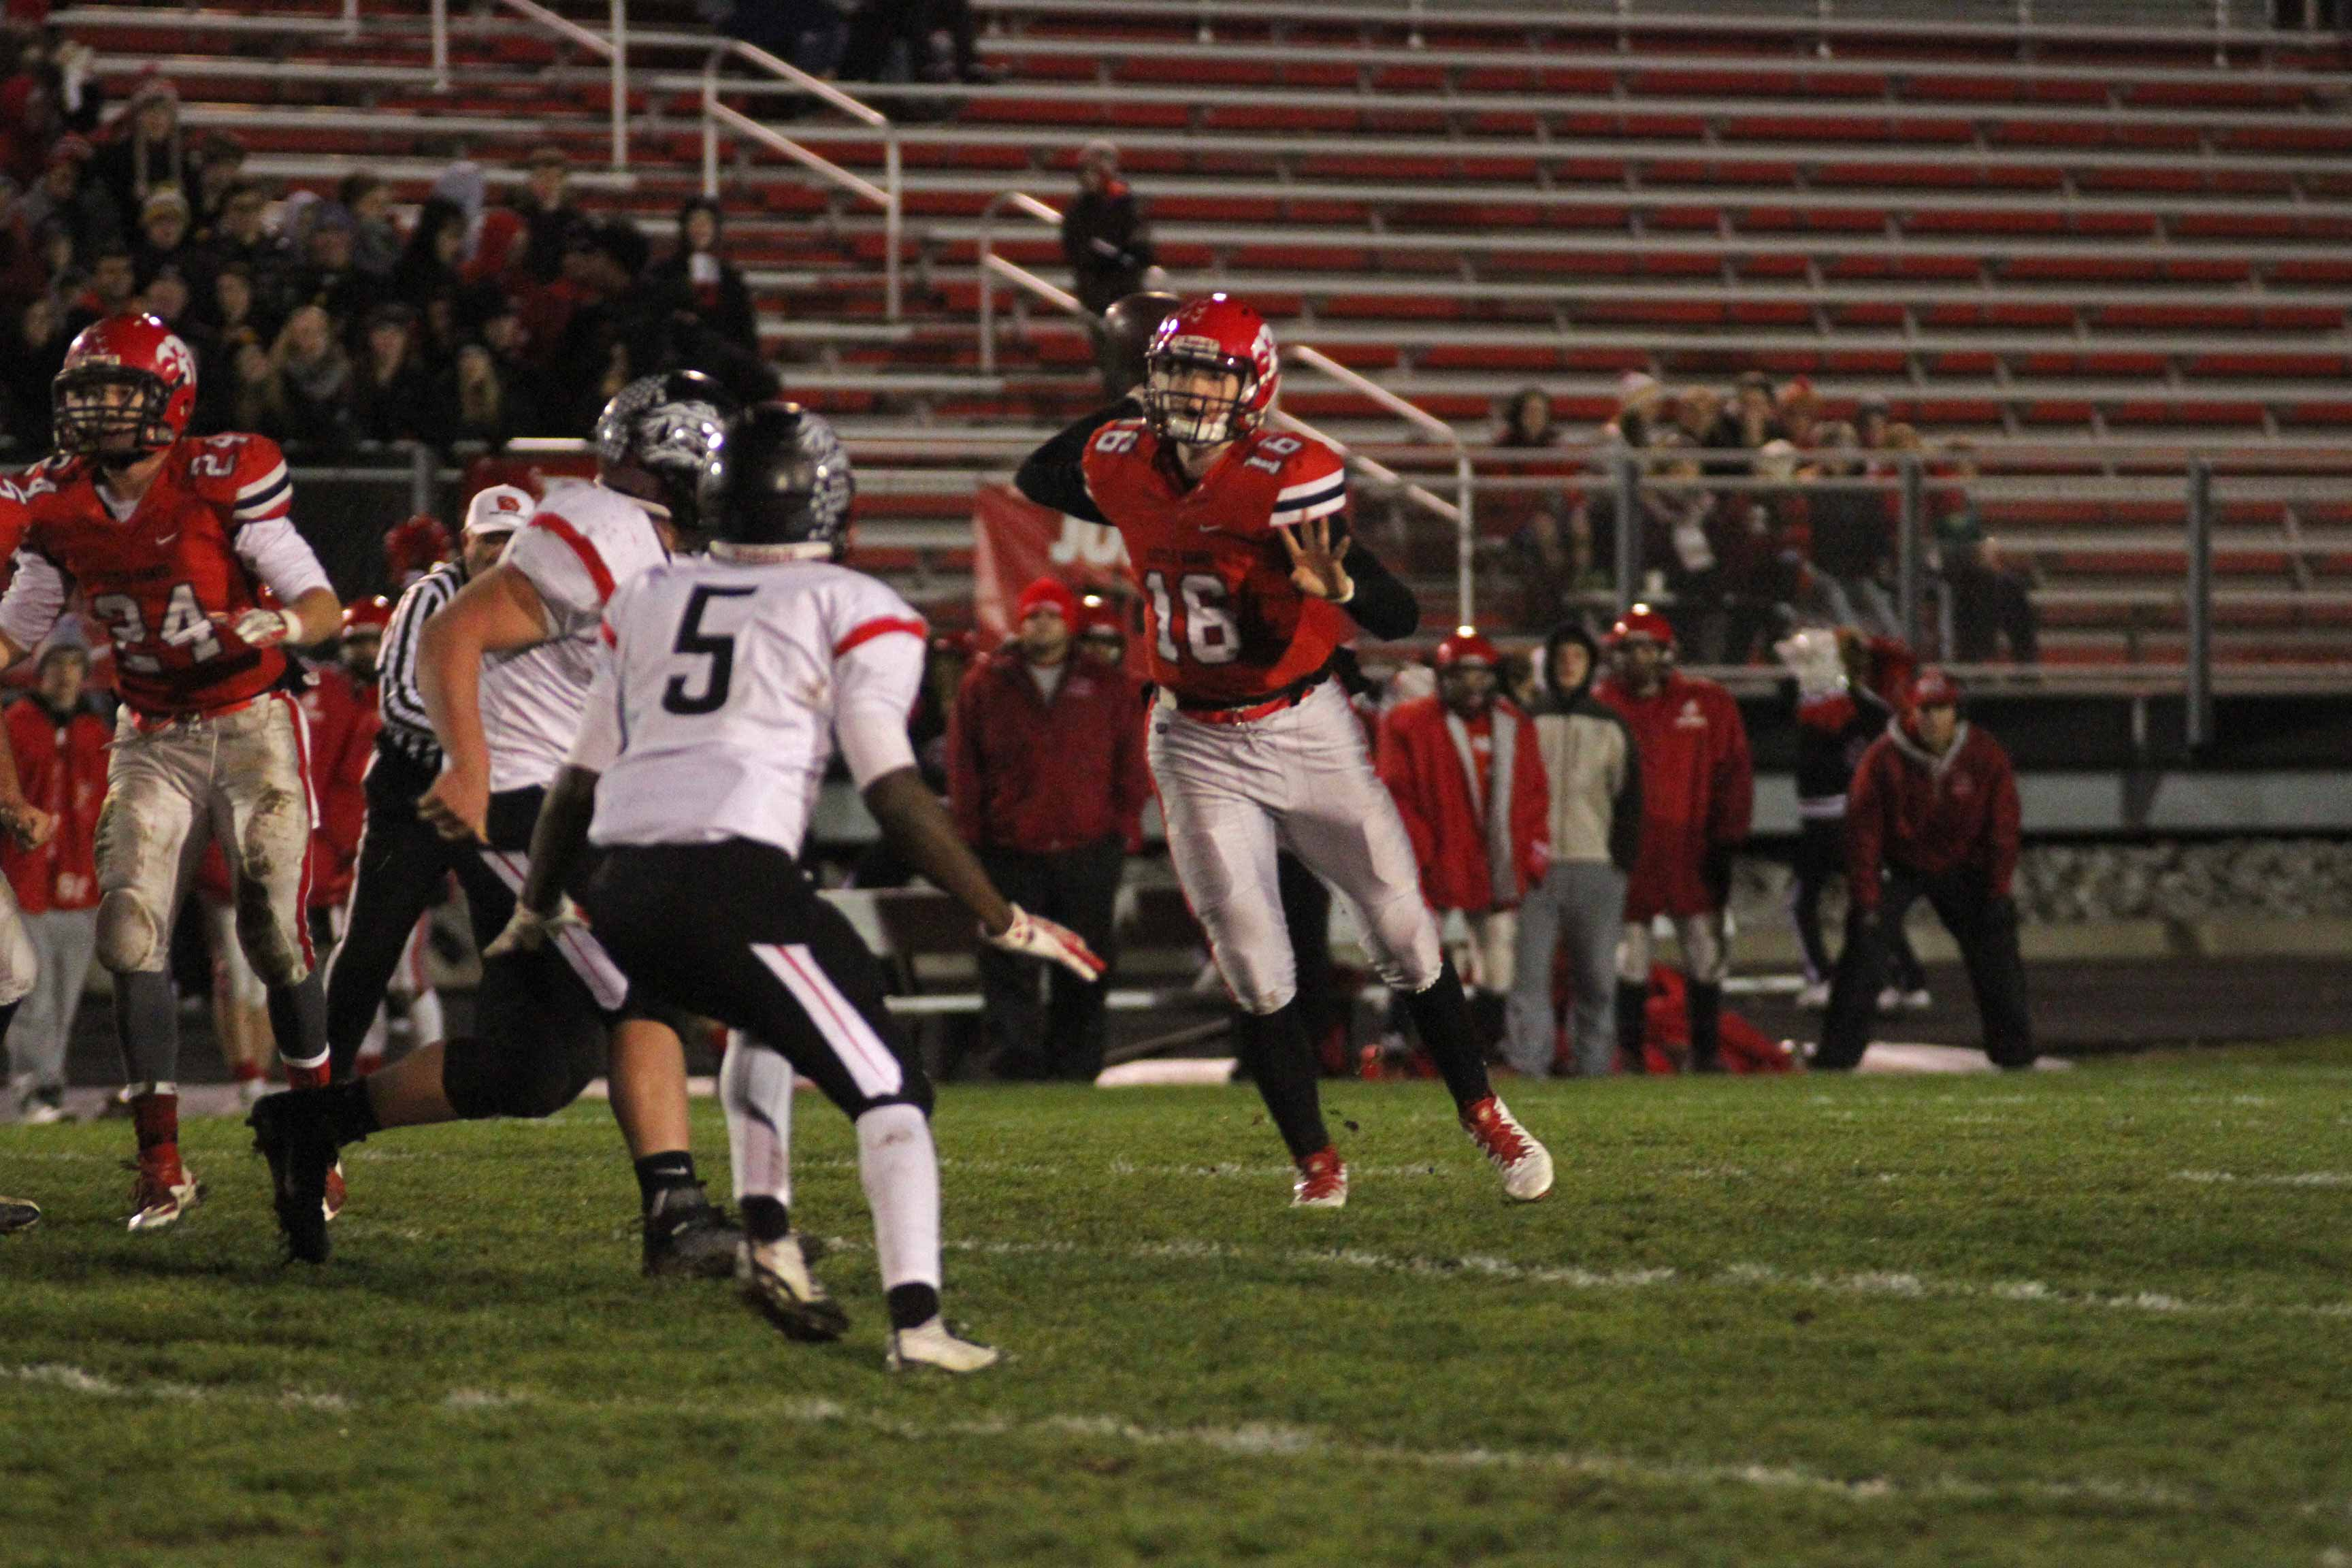 Jared Taylor '17 throws a pass in the first half at Bates Field in the first round playoff game against Linn-Mar.